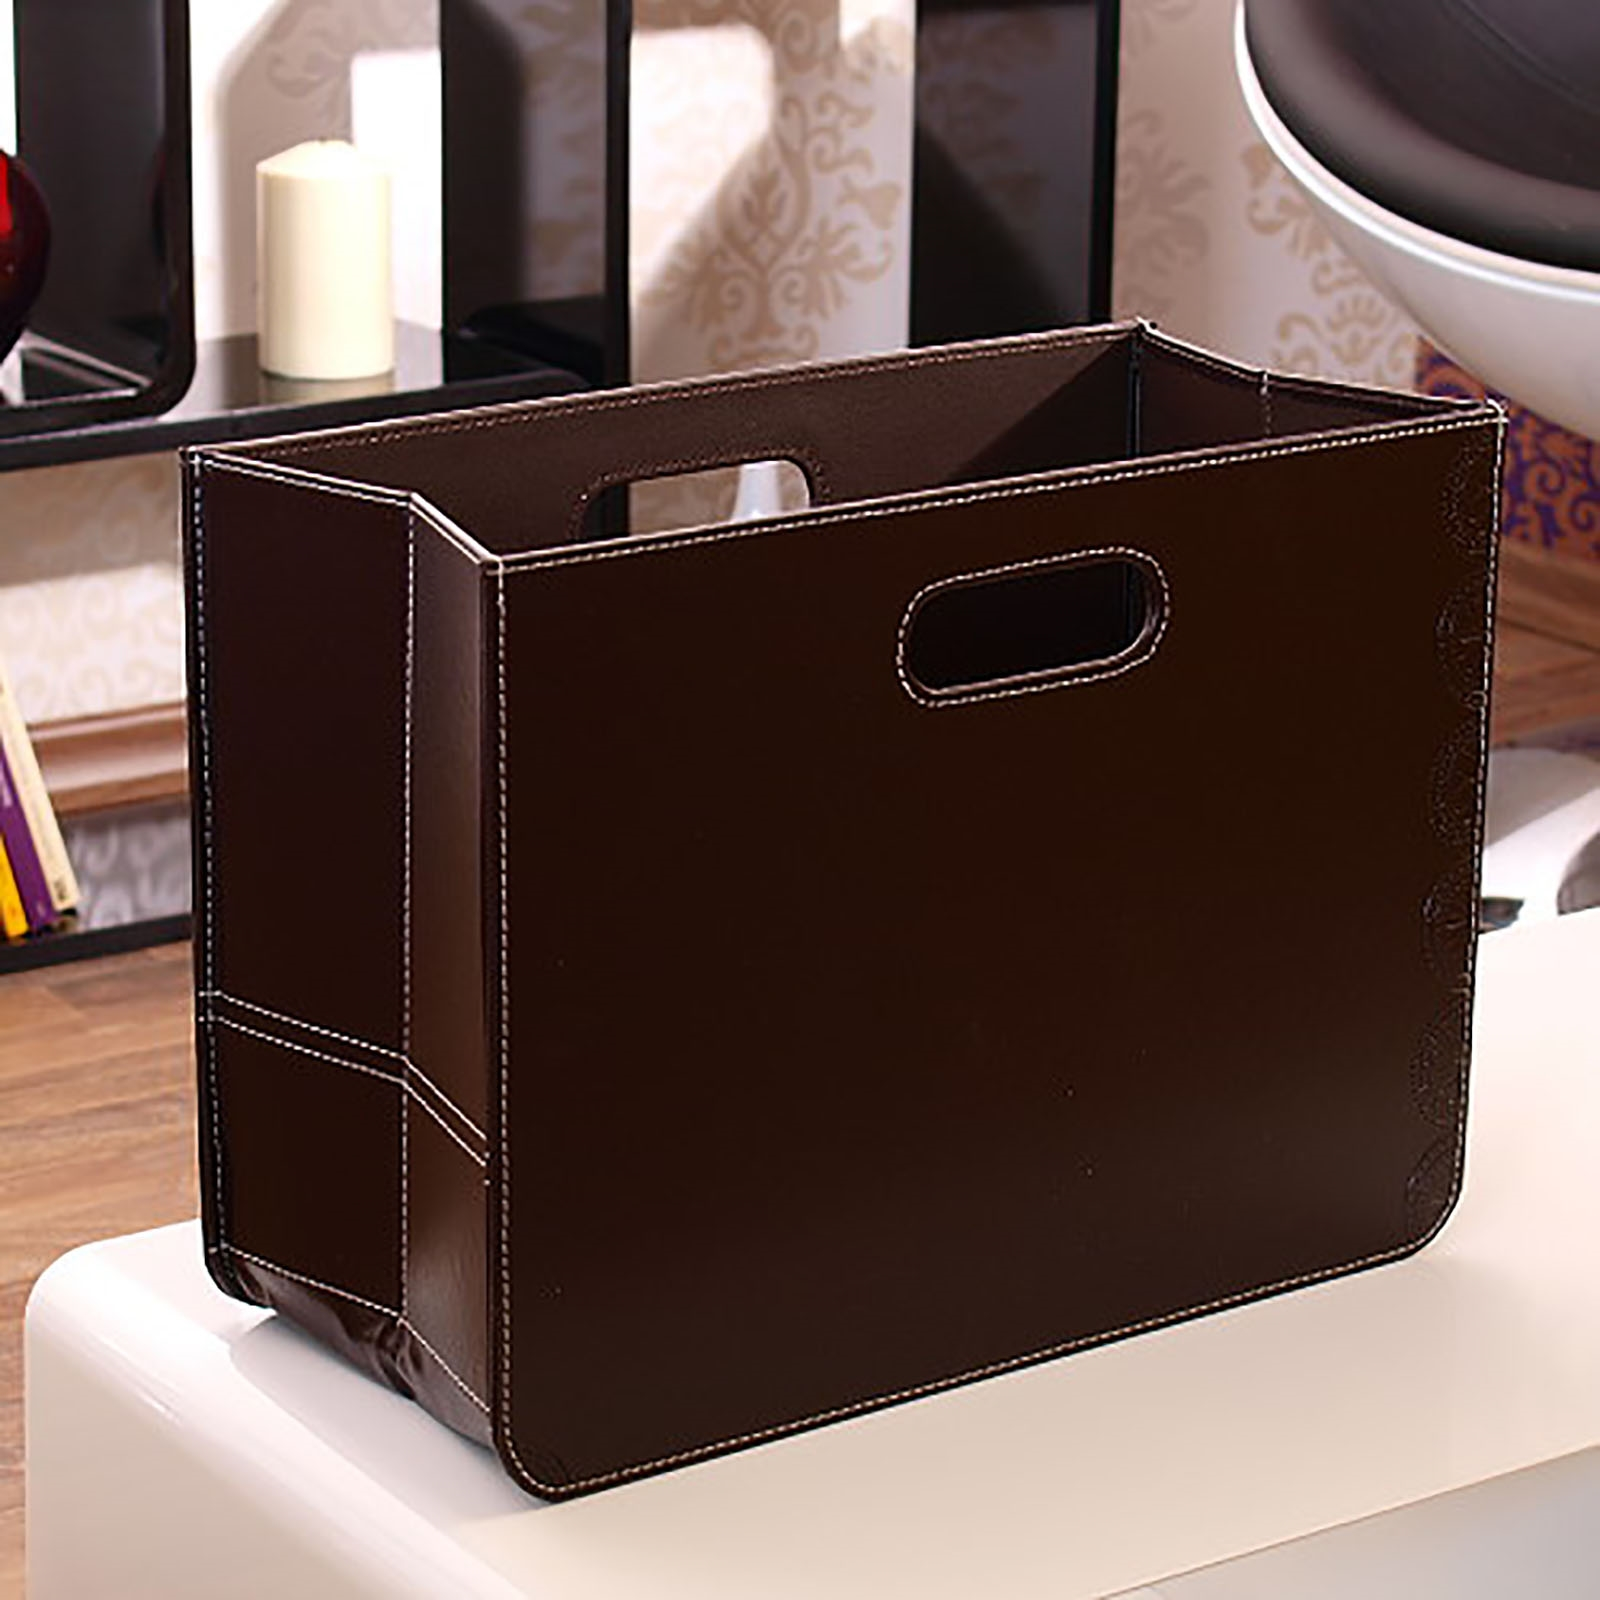 design magazine holder brown faux leather newspaper box paper dustbin ebay. Black Bedroom Furniture Sets. Home Design Ideas